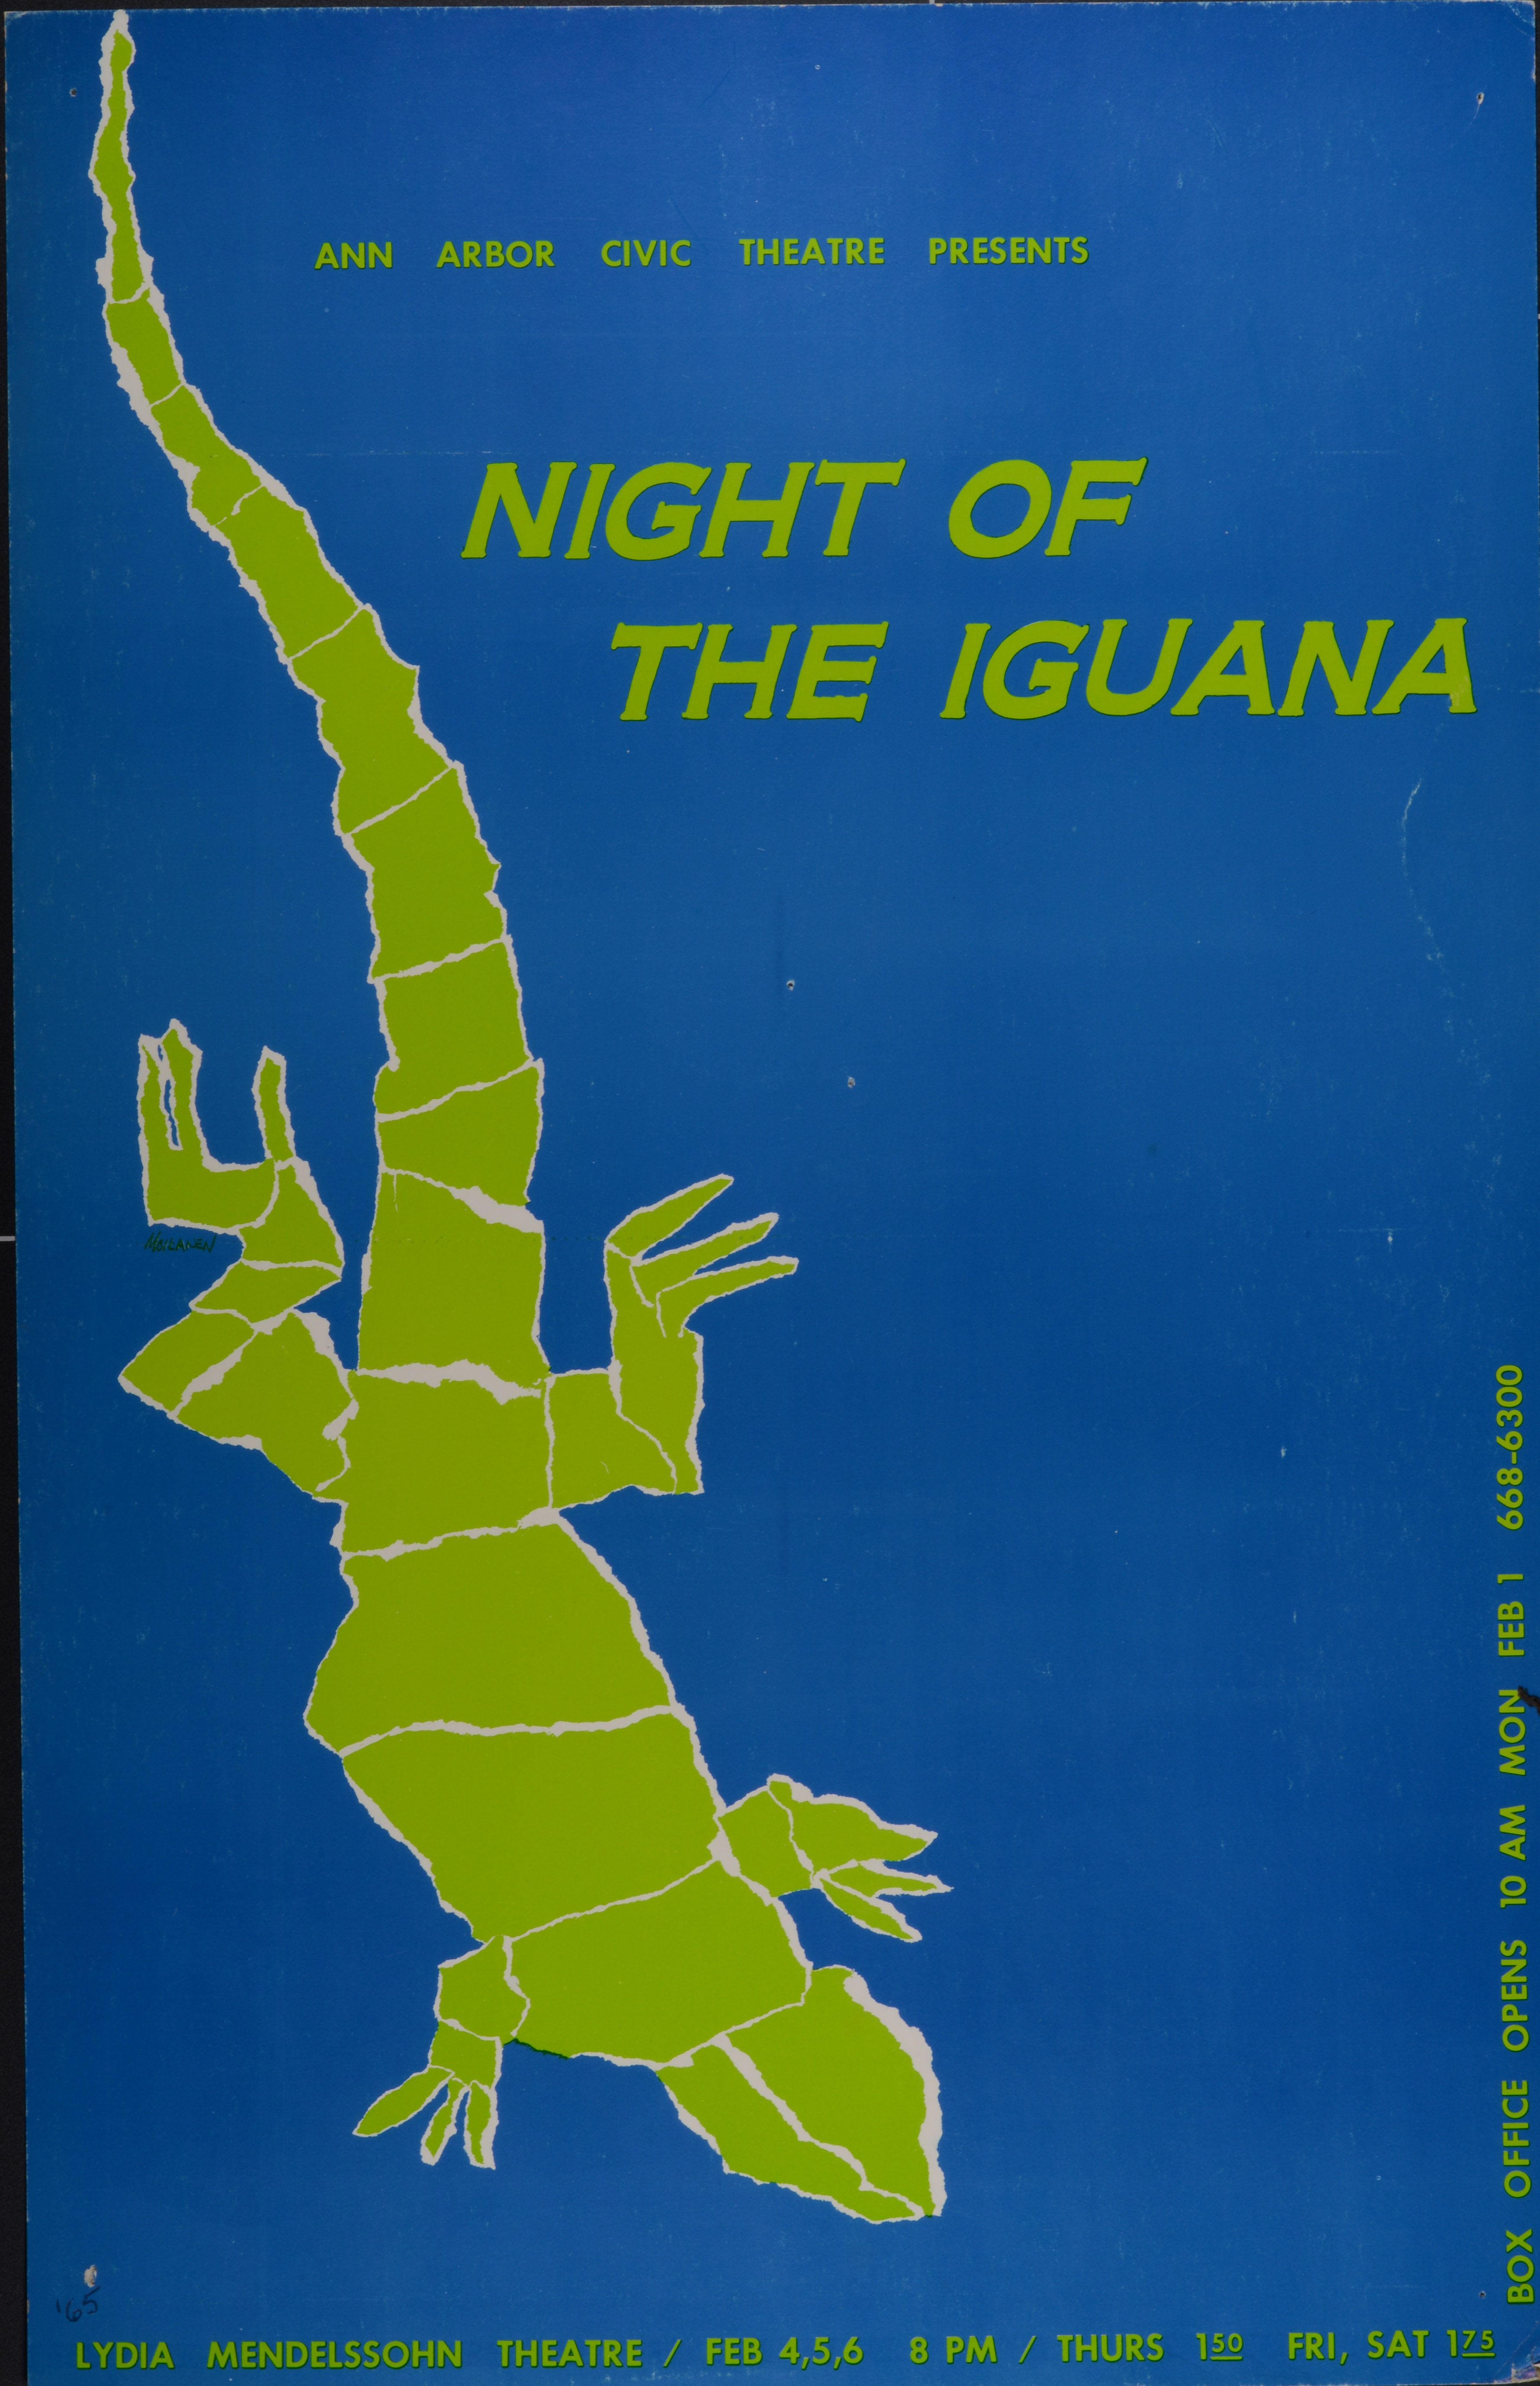 Ann Arbor Civic Theatre Poster: Night of the Iguana image